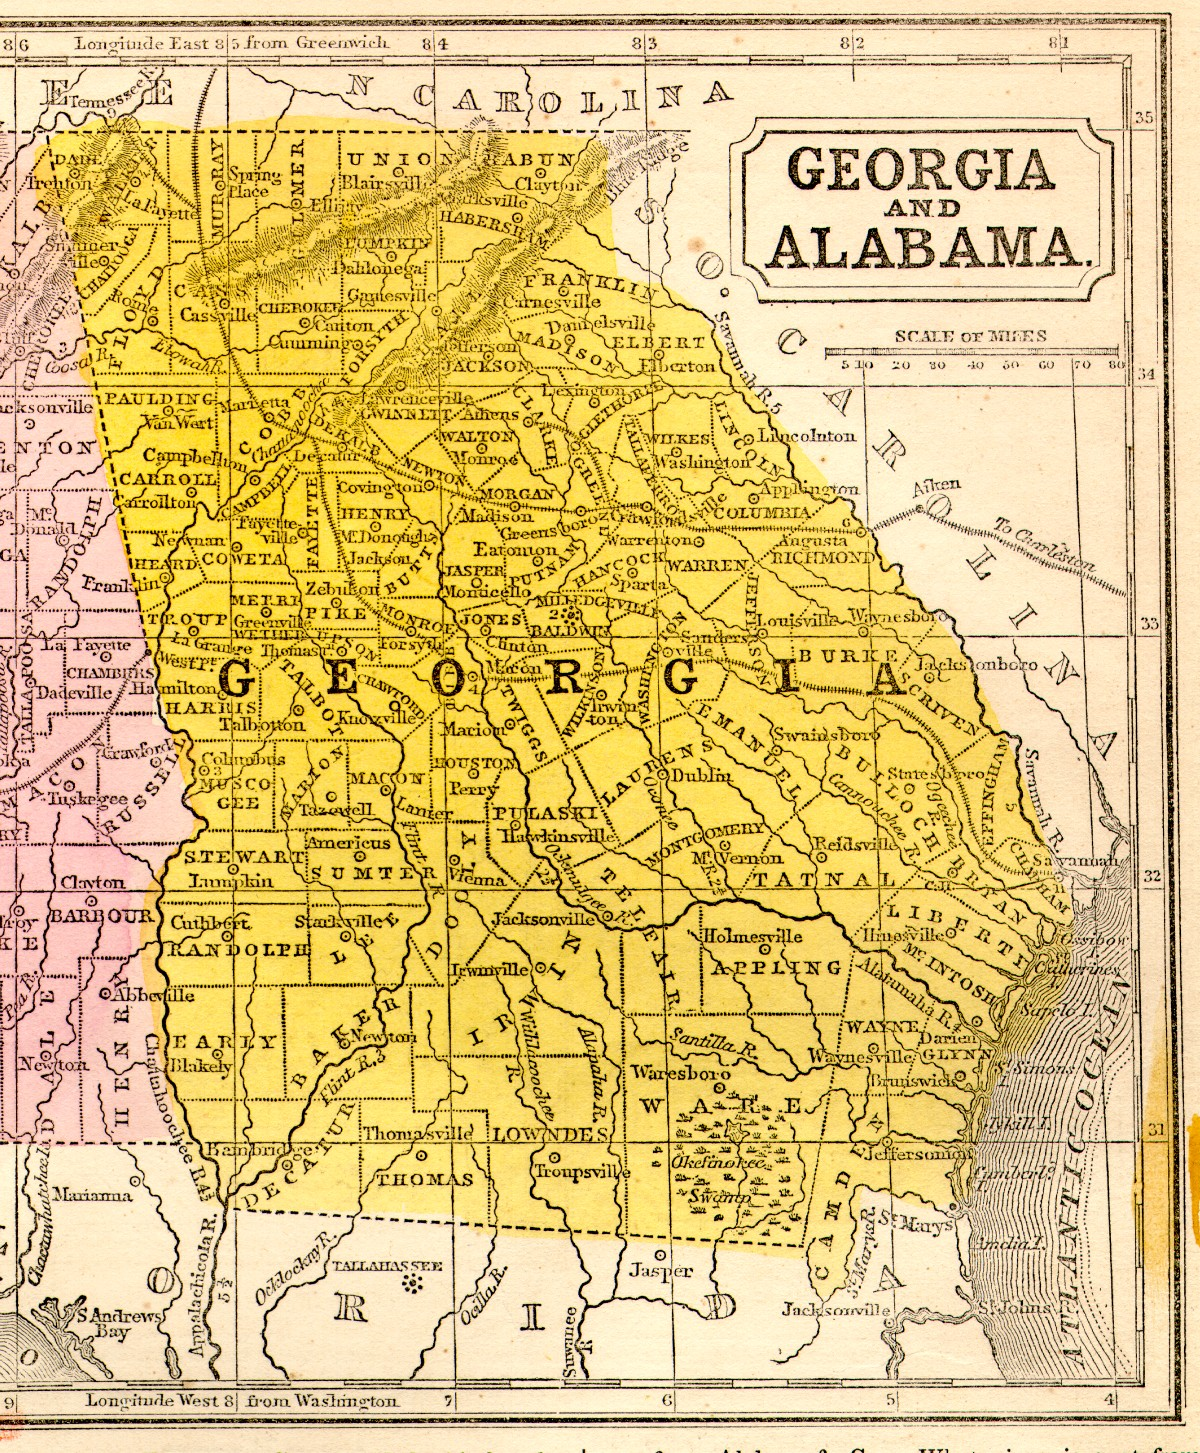 Georgia State Map - Georgia state map by county